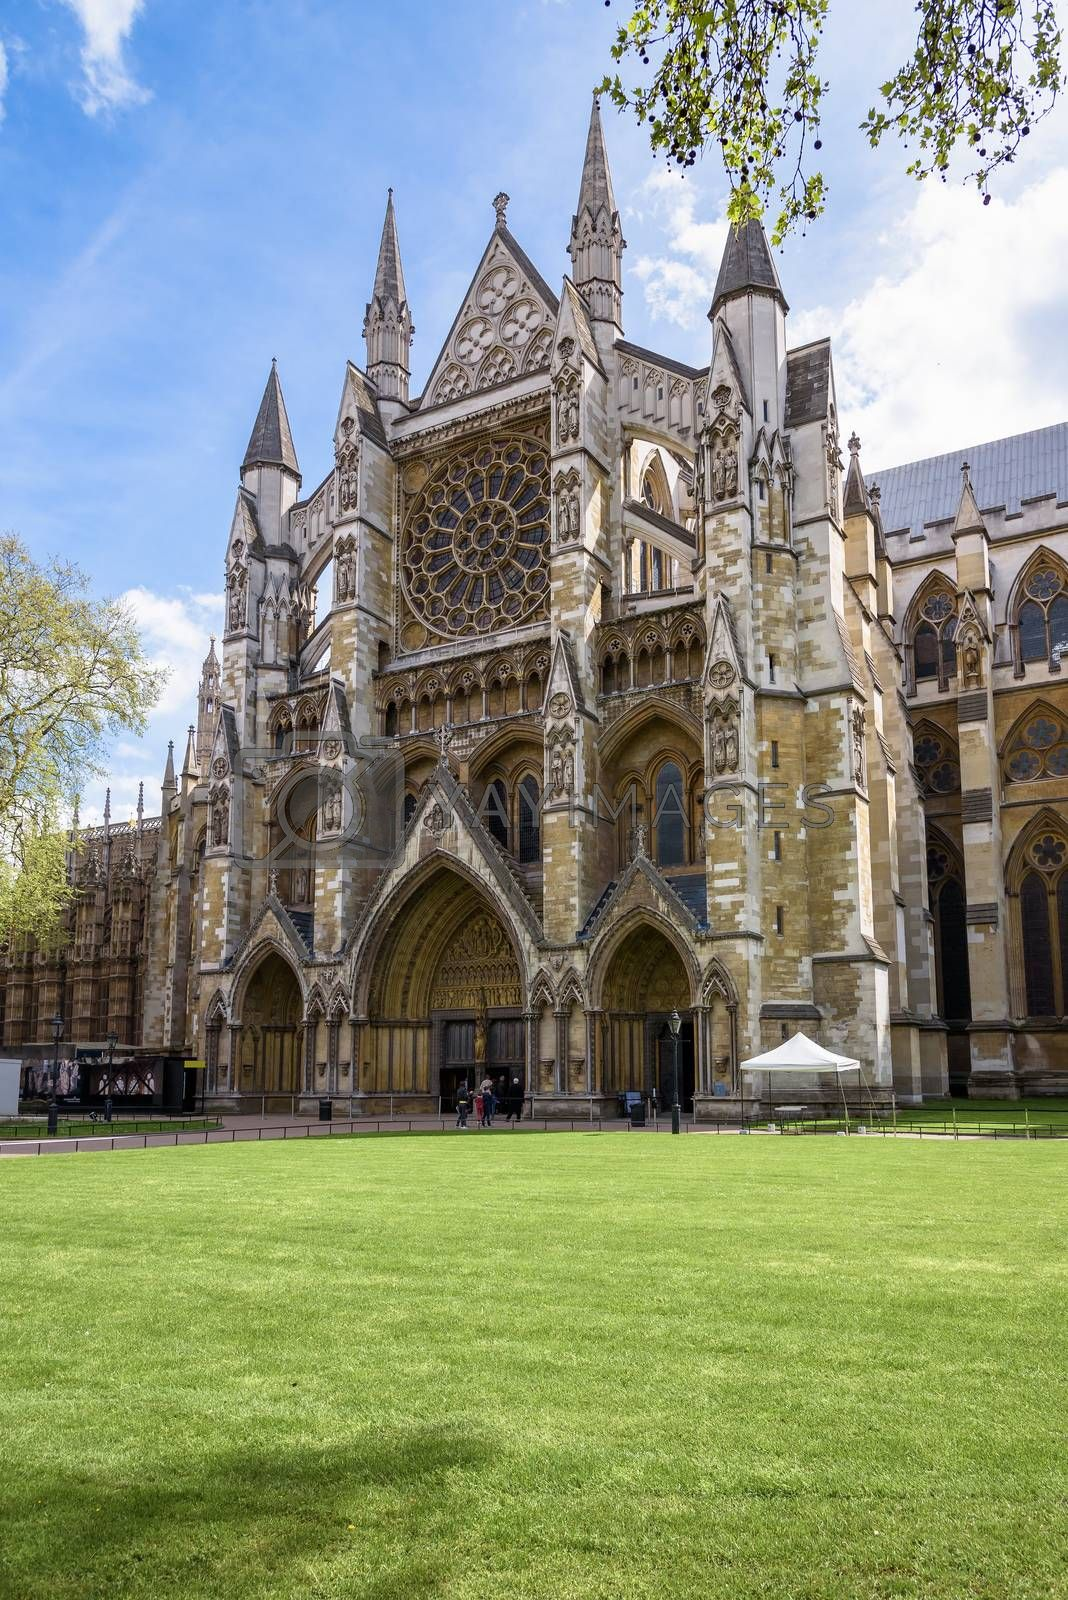 Northern entrance to the Westminster Abbey in London, UK